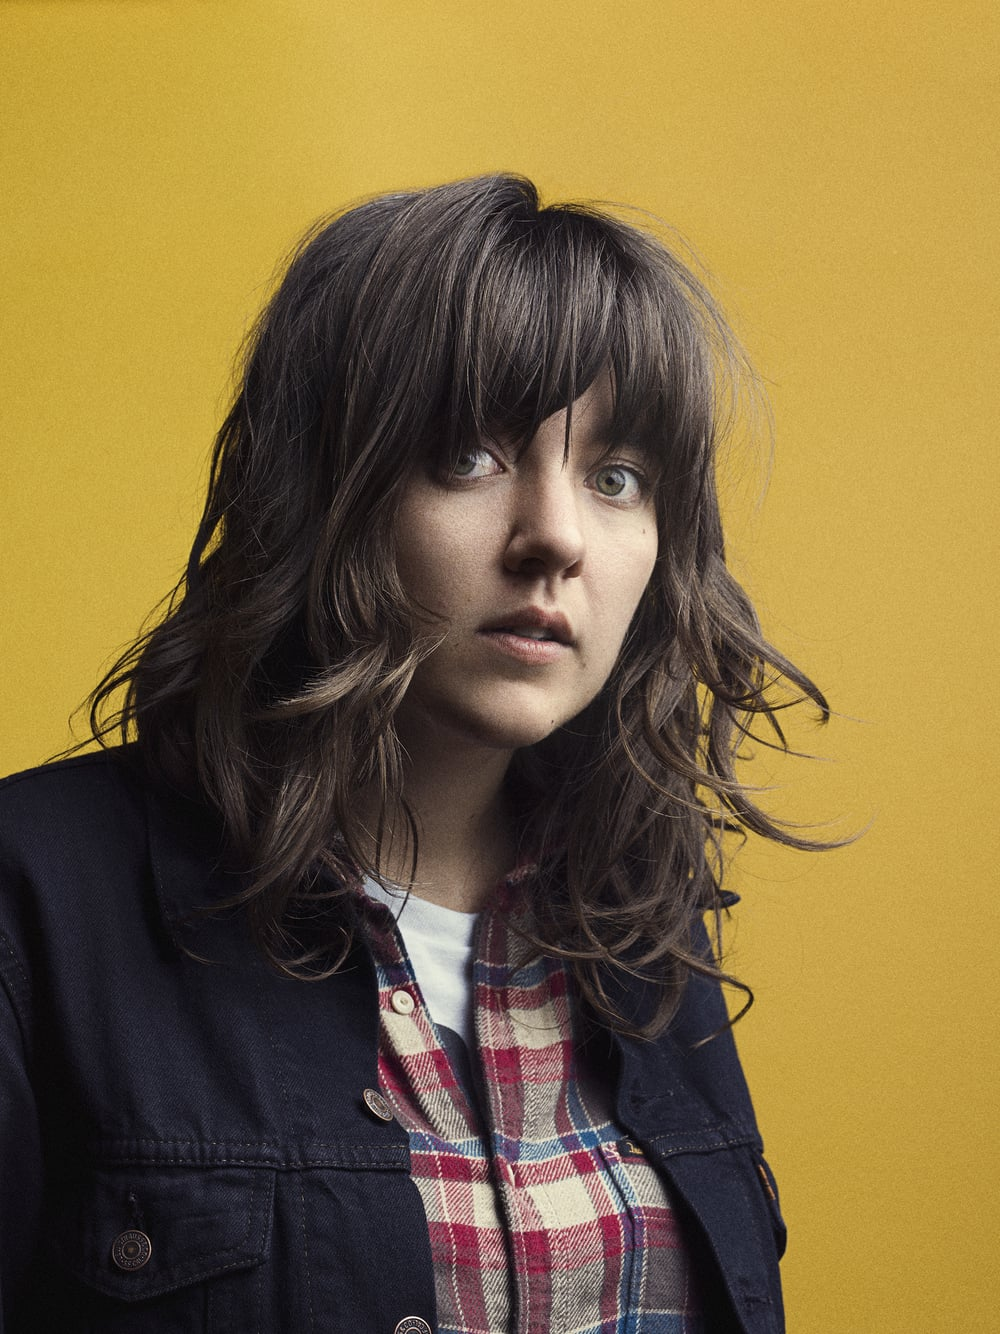 Courtney_Barnett-129_F1_RGB.jpg